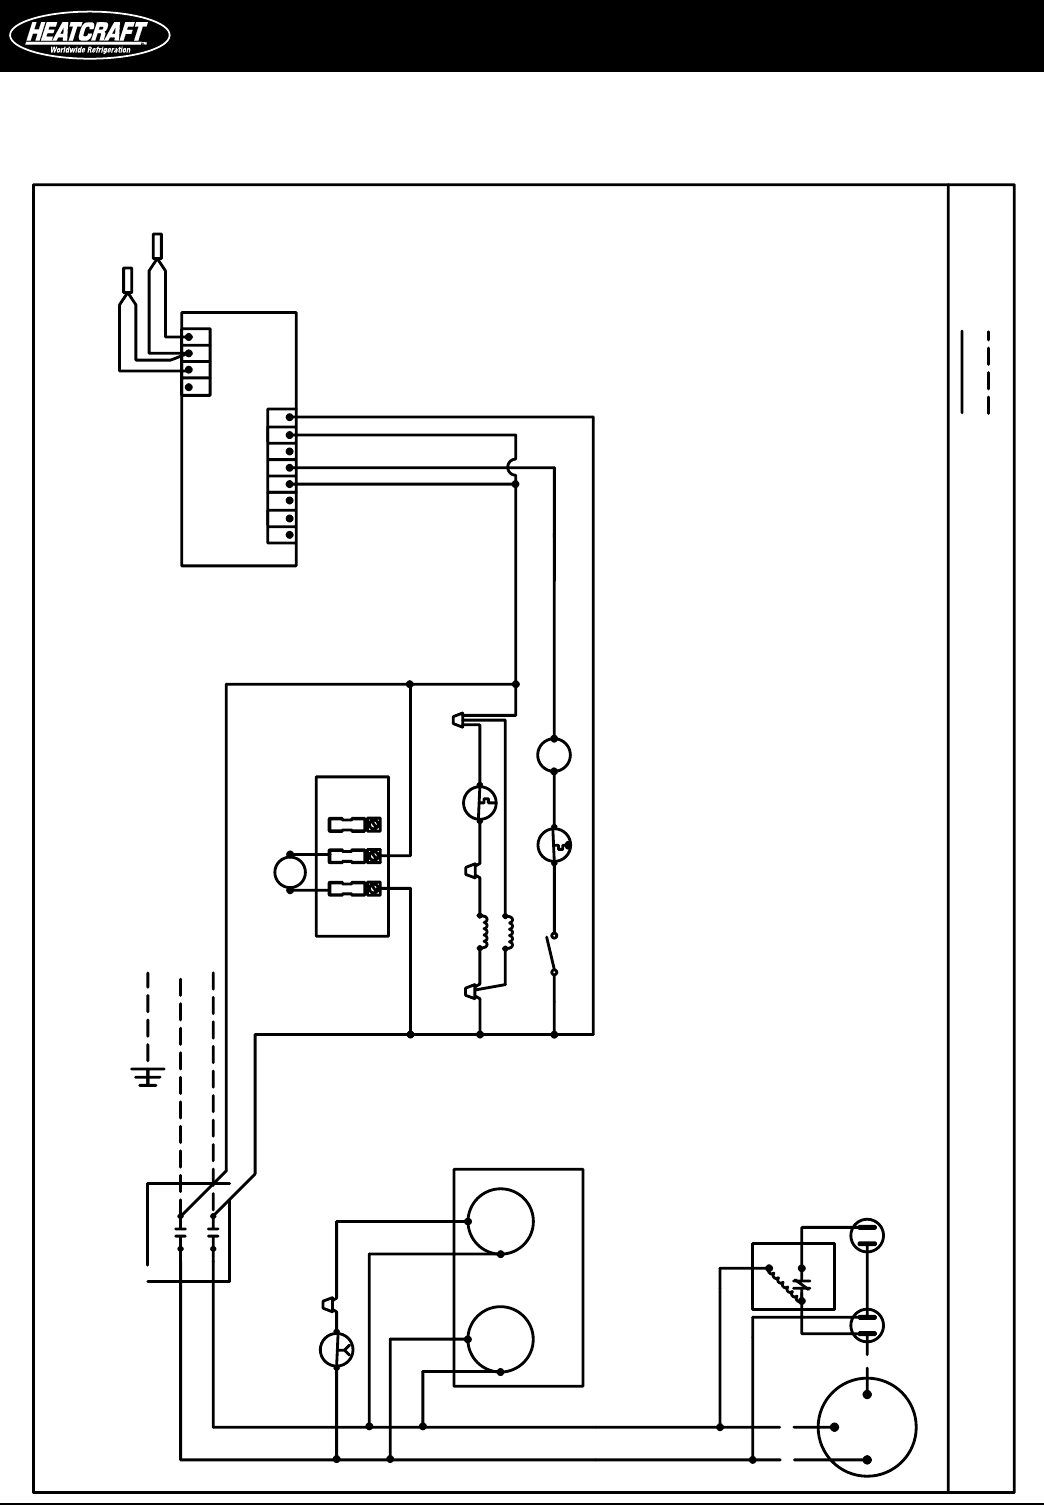 55587f91 c859 def4 0921 730c5709c050 bg10 page 16 of heatcraft refrigeration products refrigerator pro3 user defrost termination switch wiring diagram at fashall.co